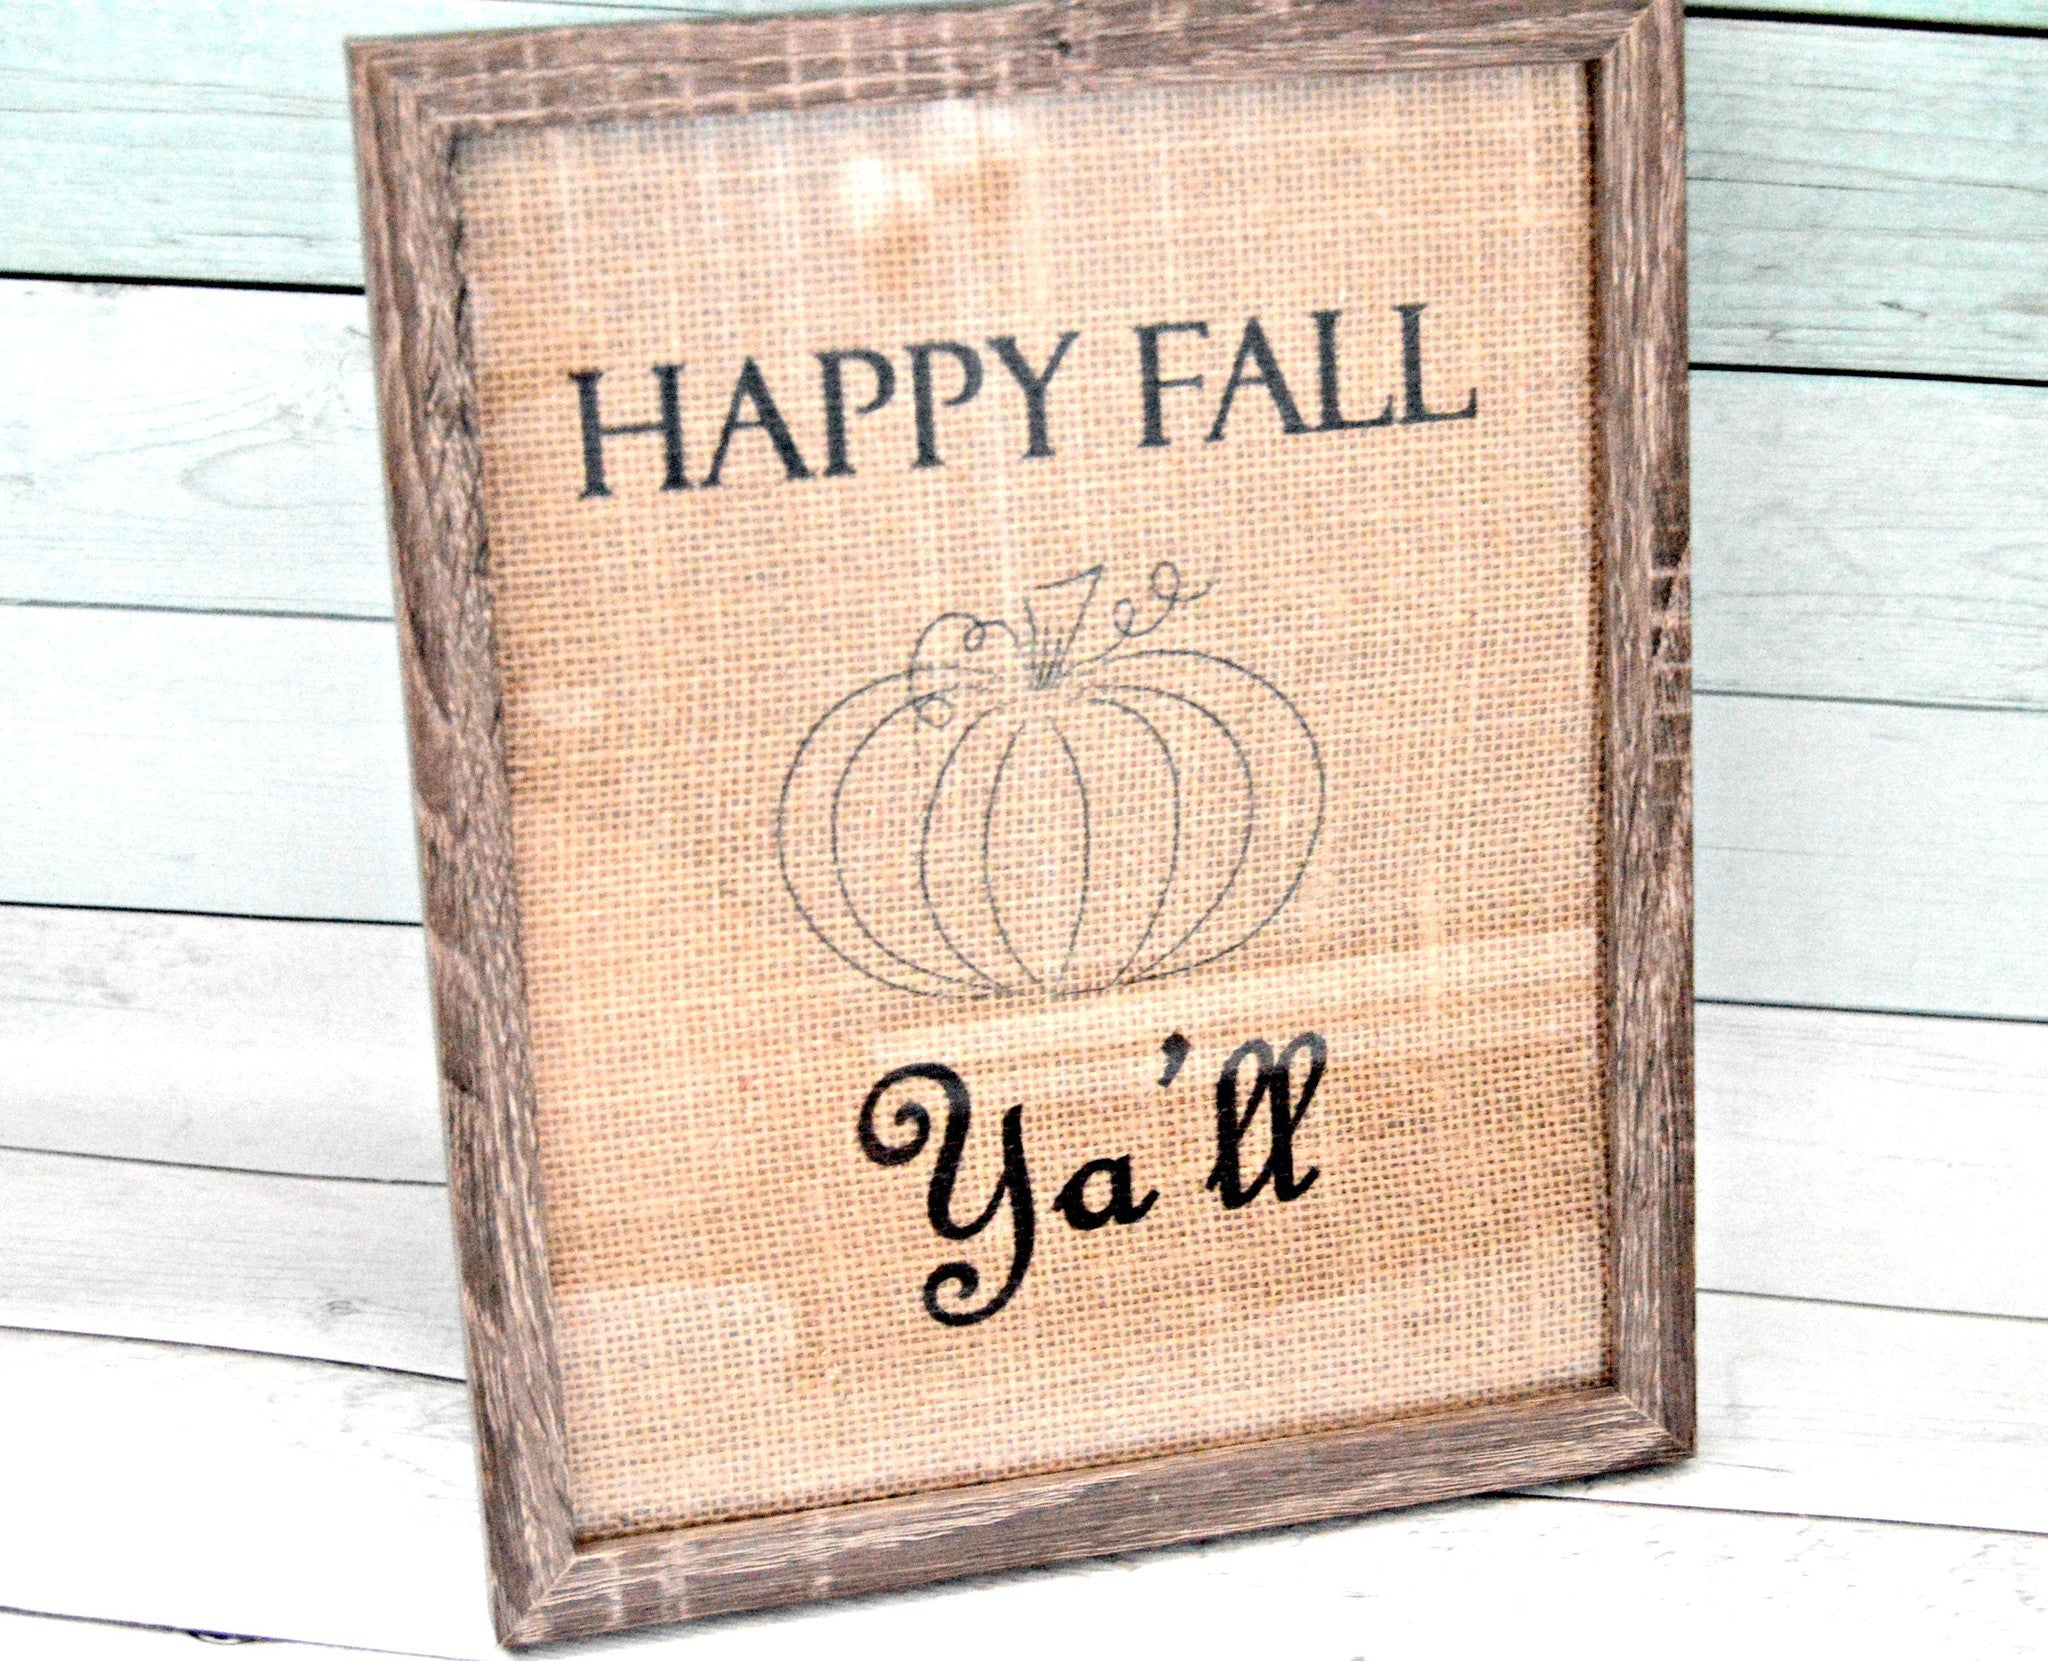 Happy Fall Ya'll Burlap Home Decor